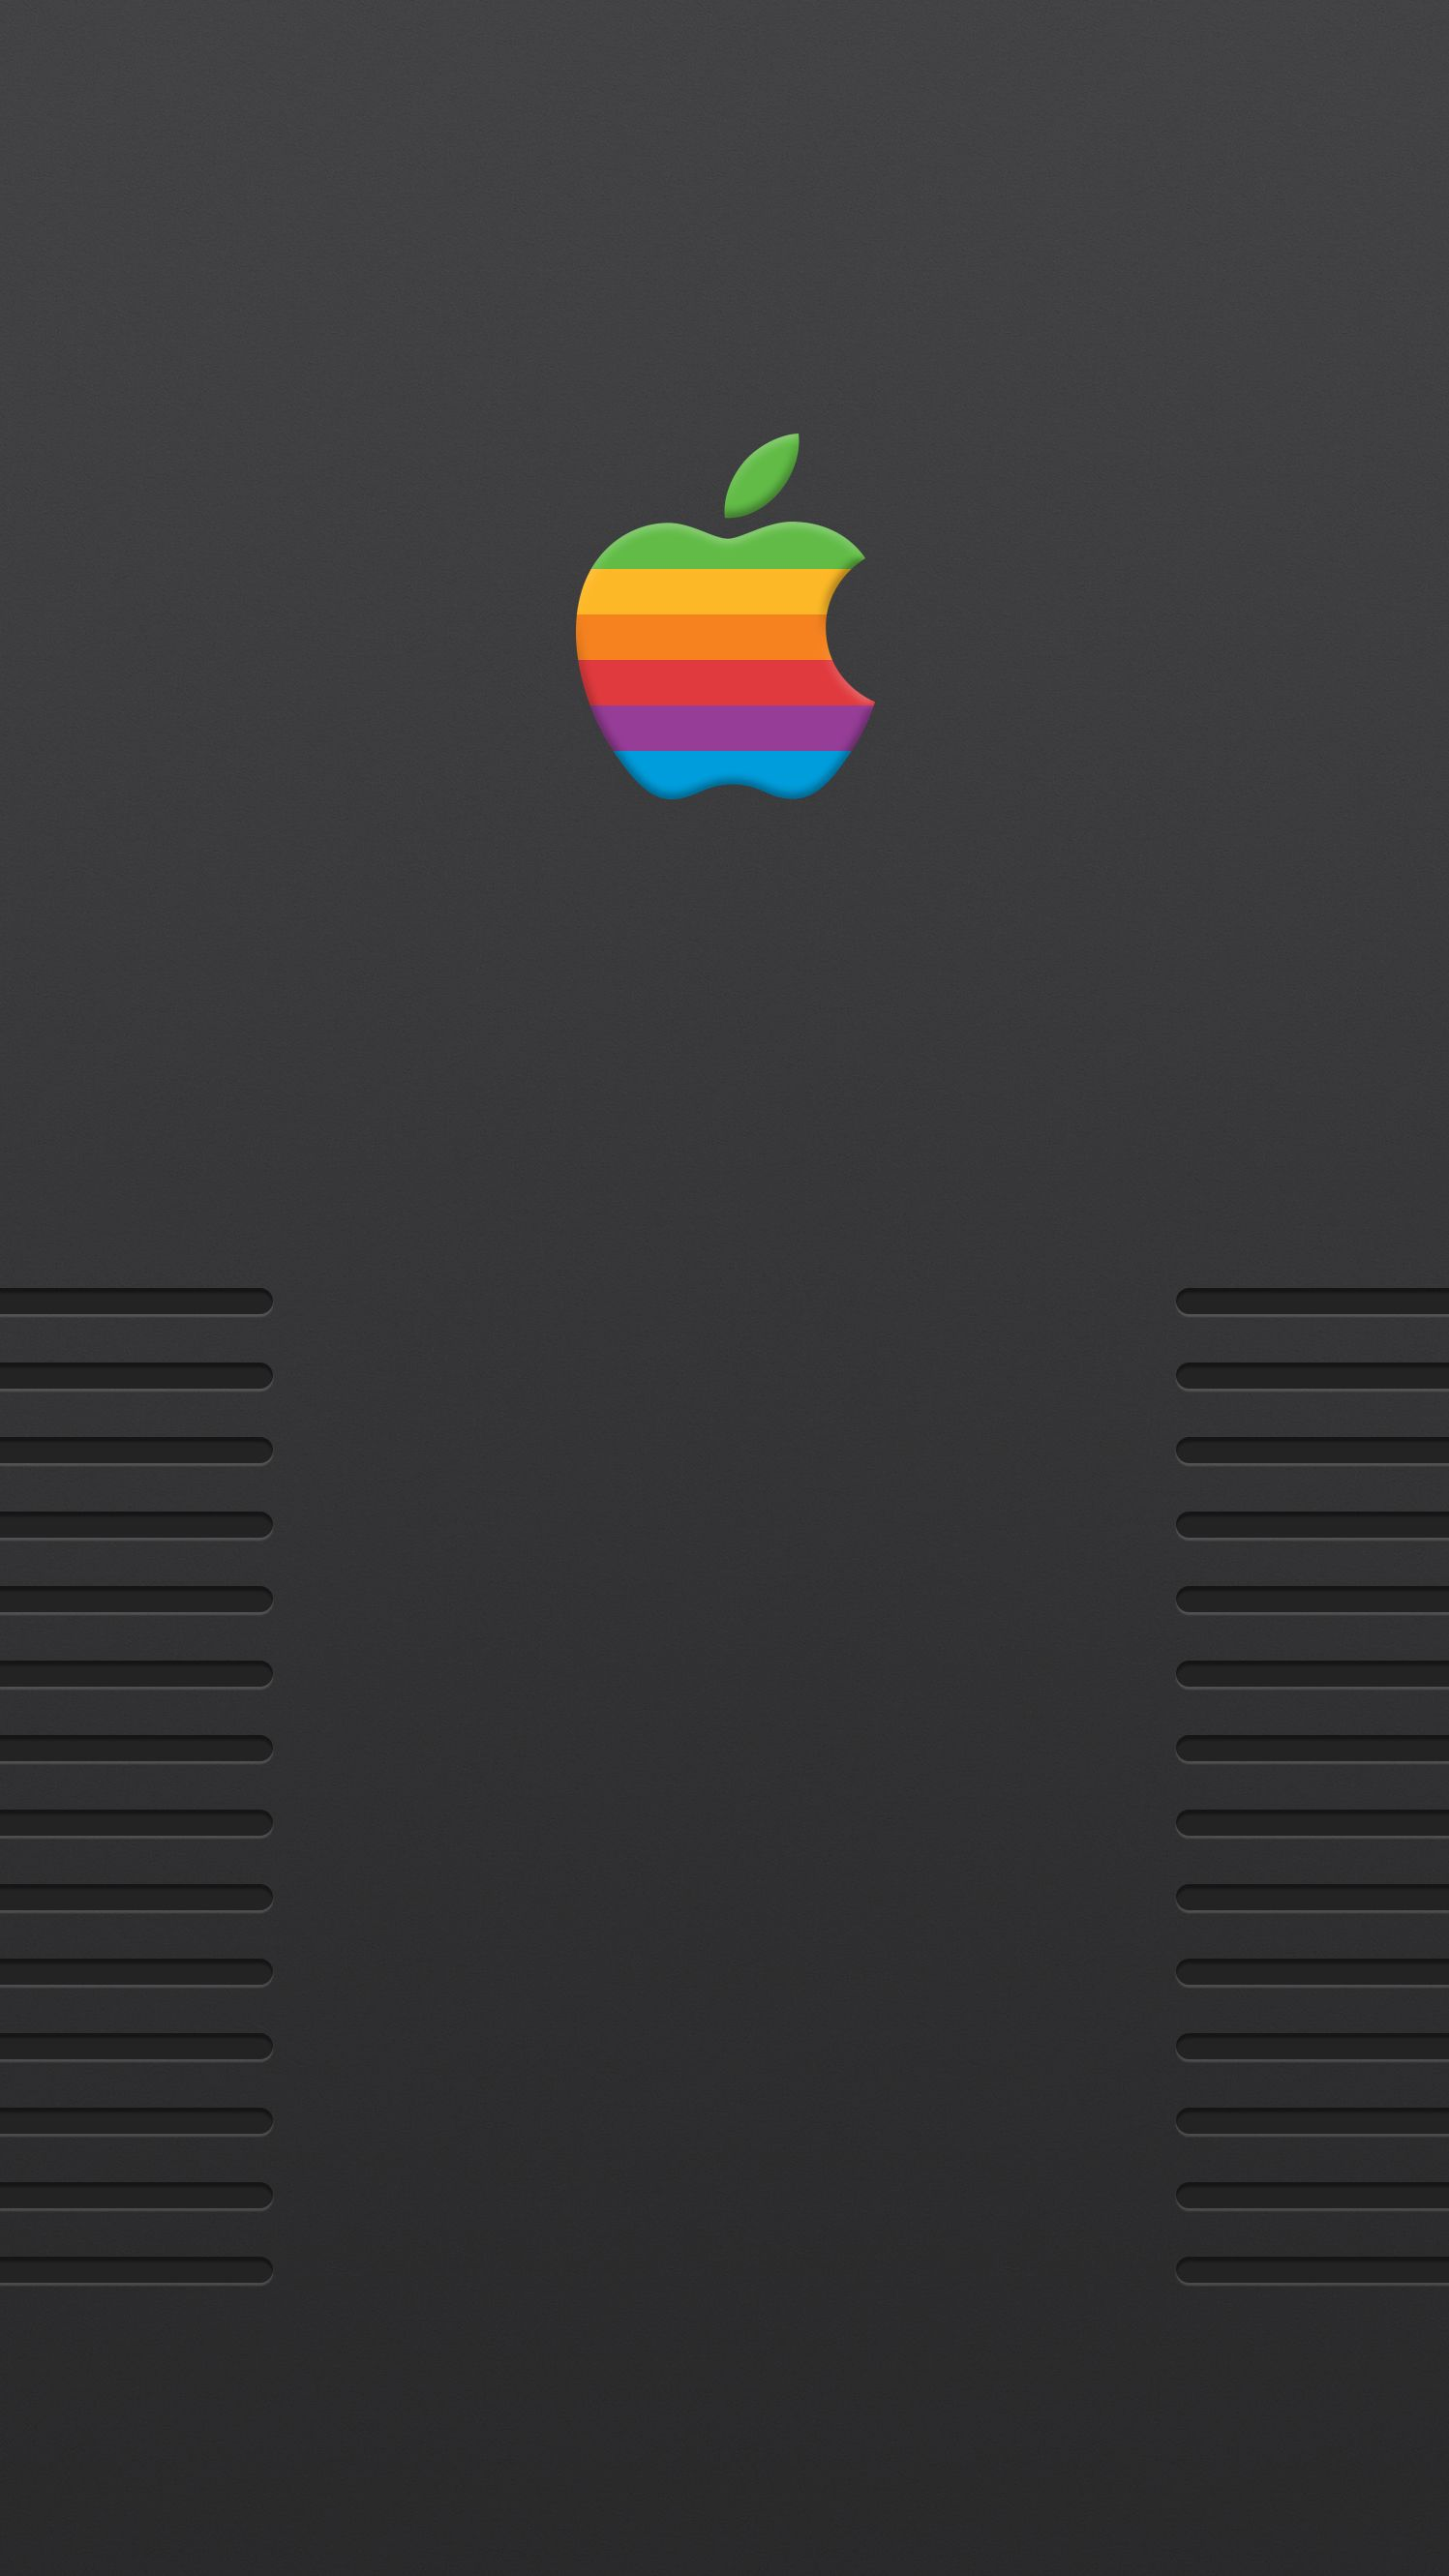 Iphone Retro Apple Wallpaper Bing Images